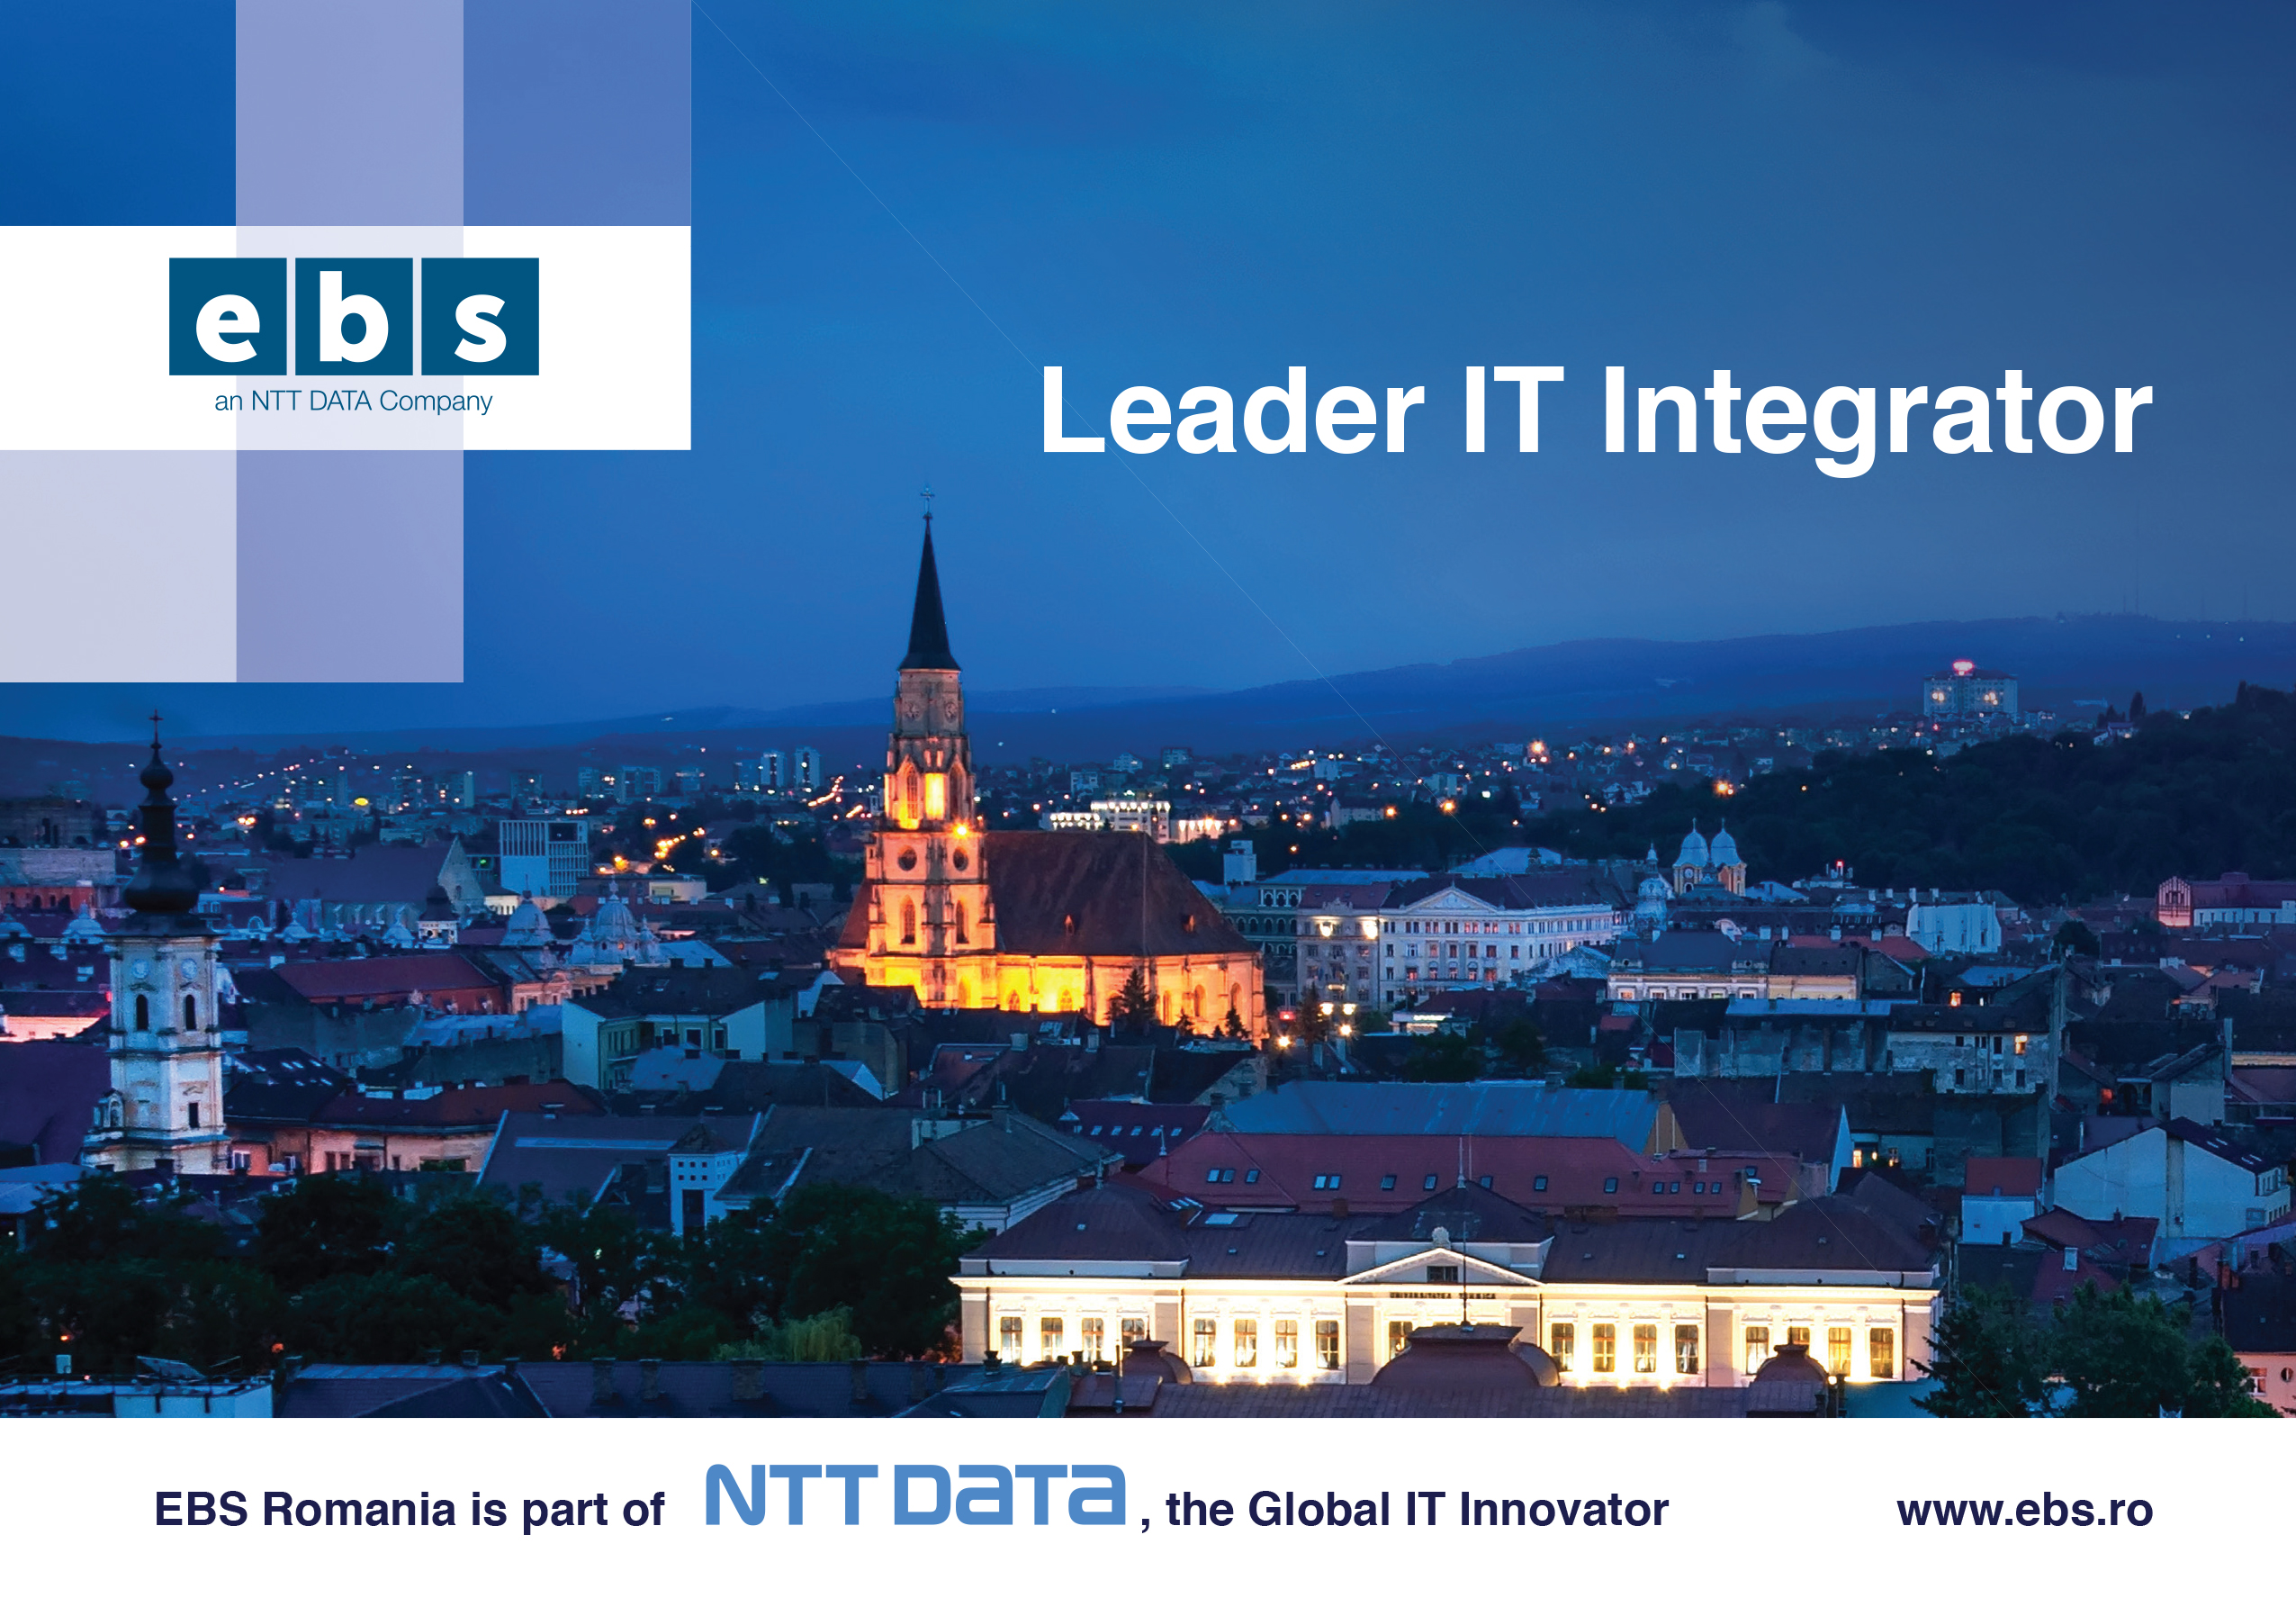 Leader IT Integrator